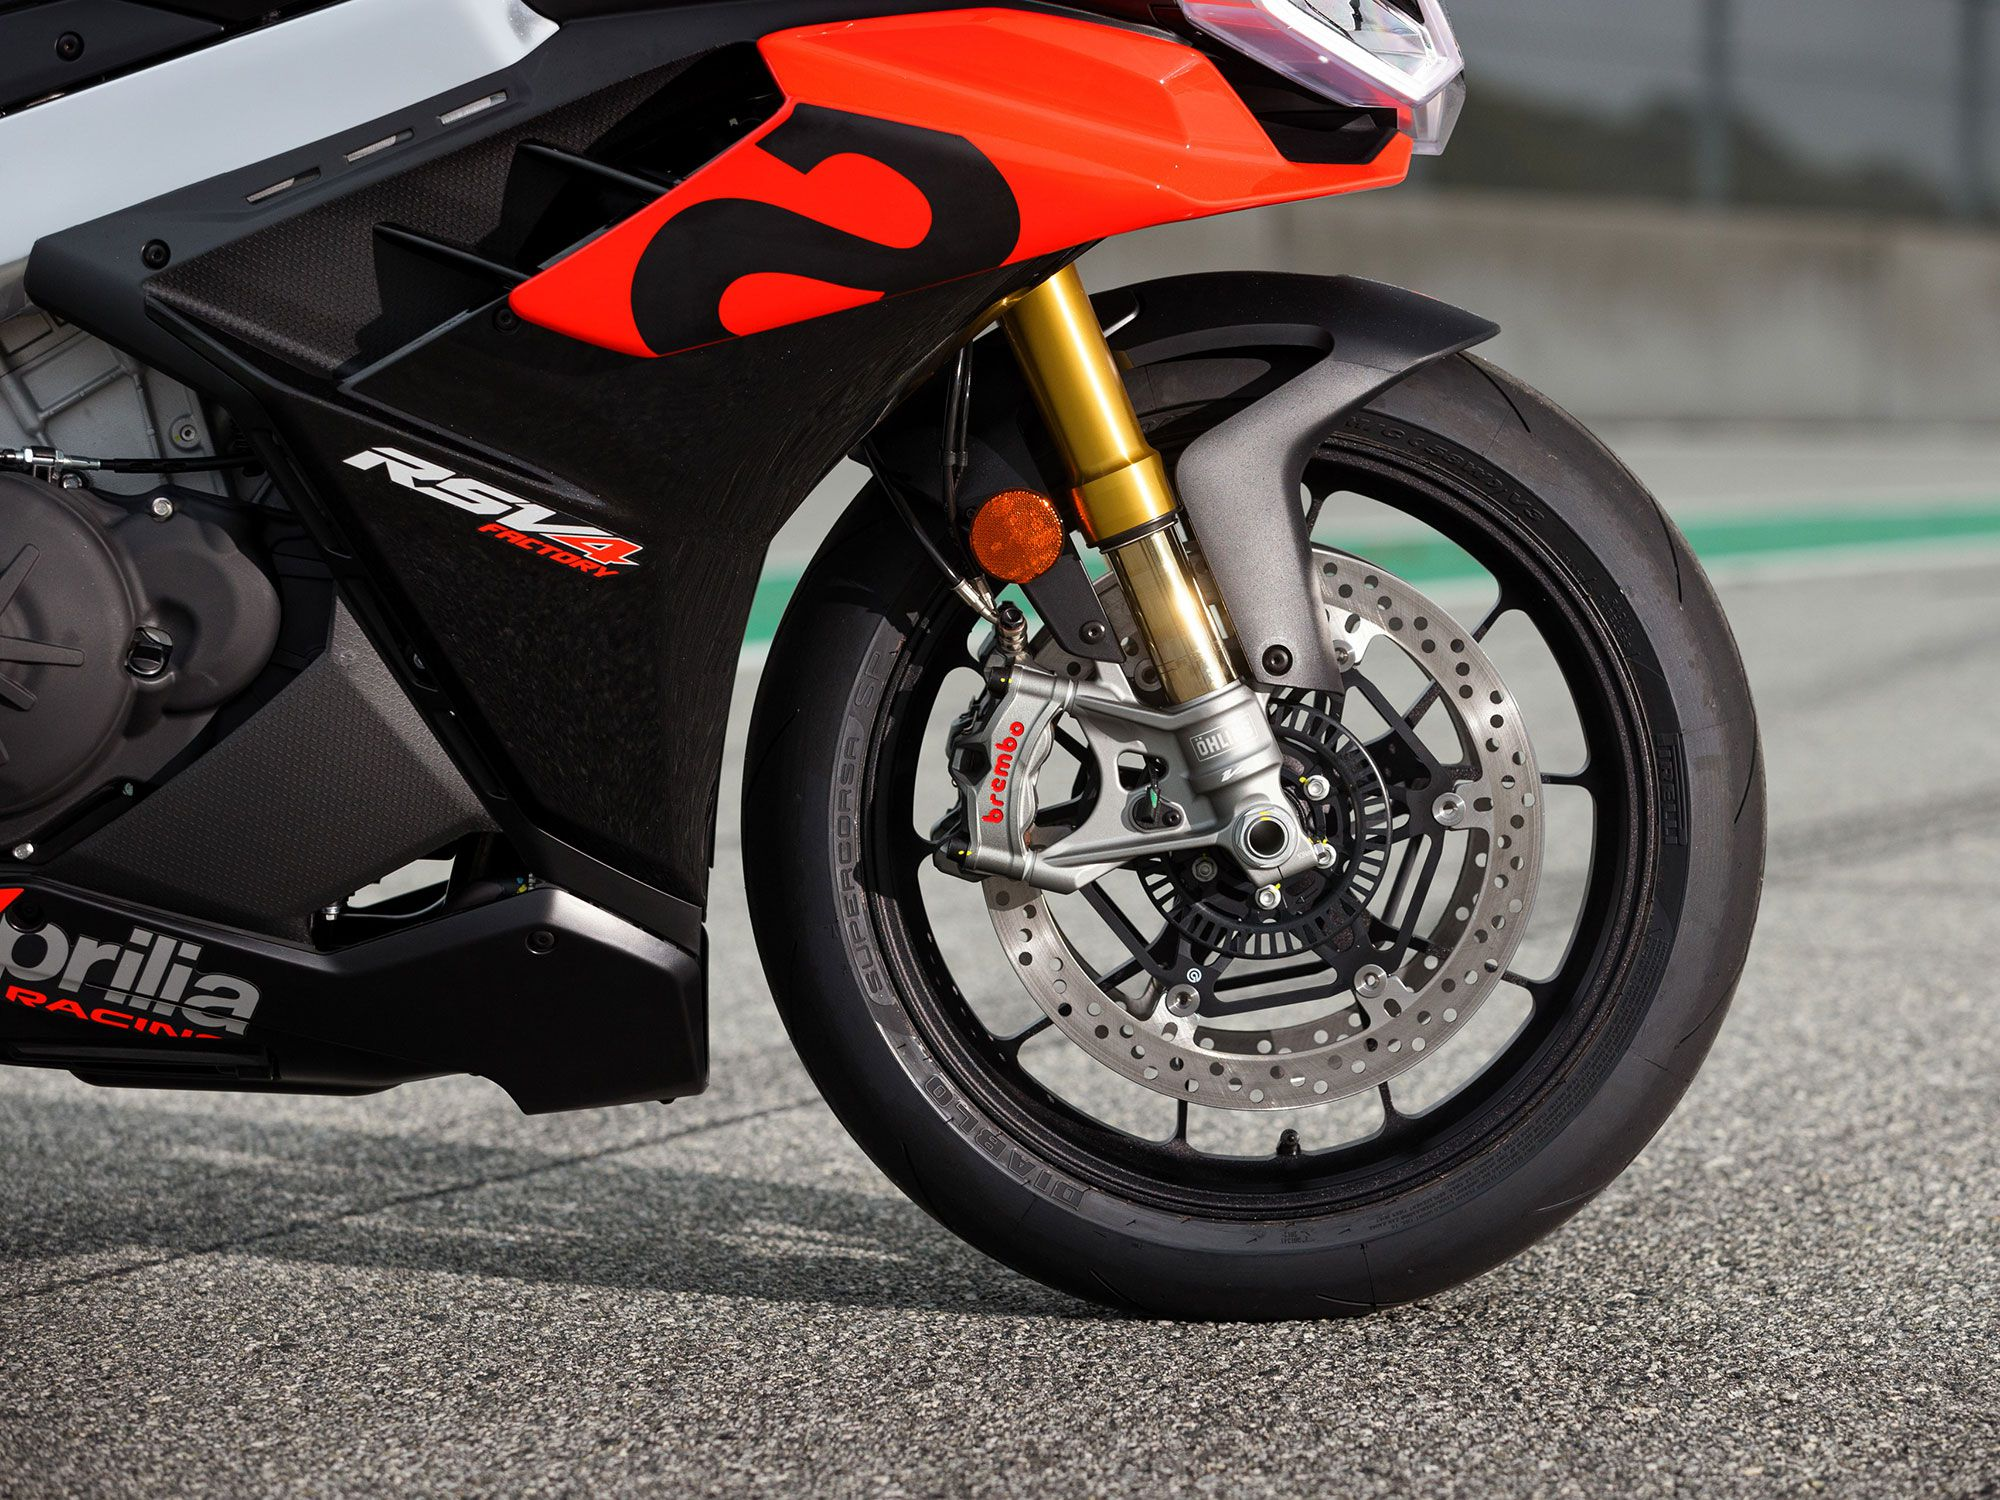 The RSV4 Factory benefits from Öhlins semi-active suspension and forged alloy wheels.